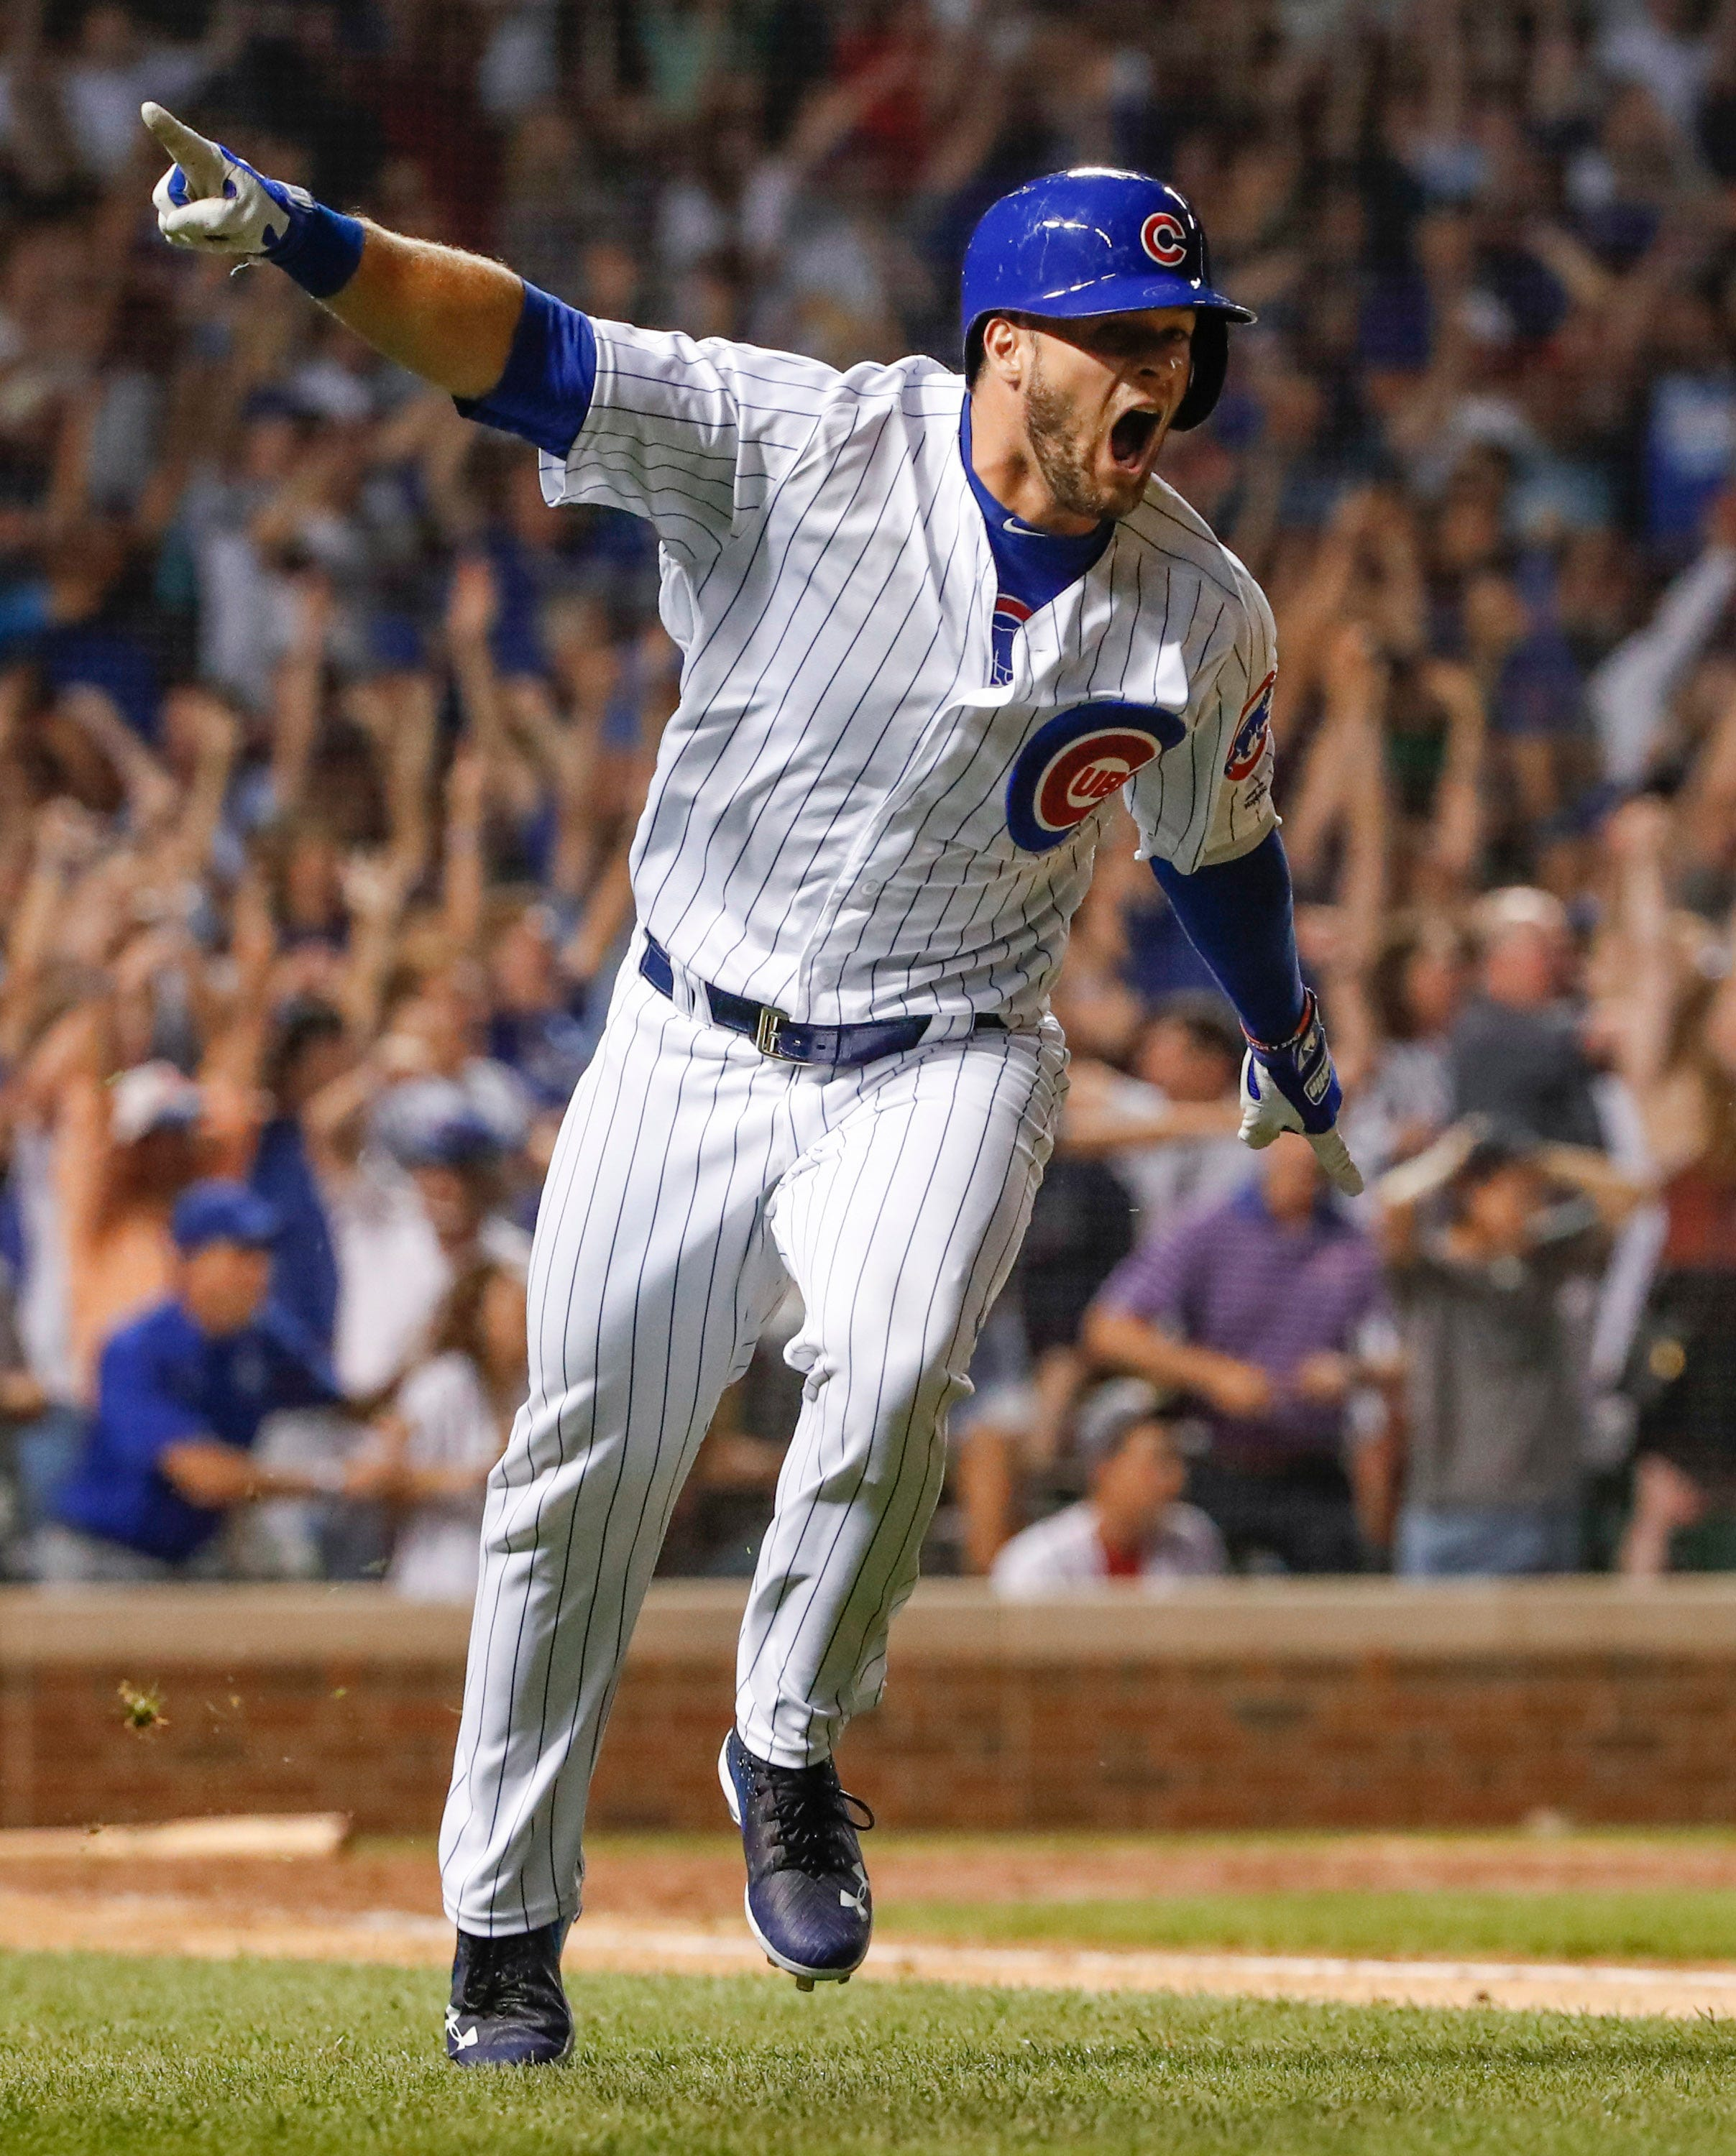 Cubs rookie David Bote stuns Nationals with pinch-hit, walk-off grand slam